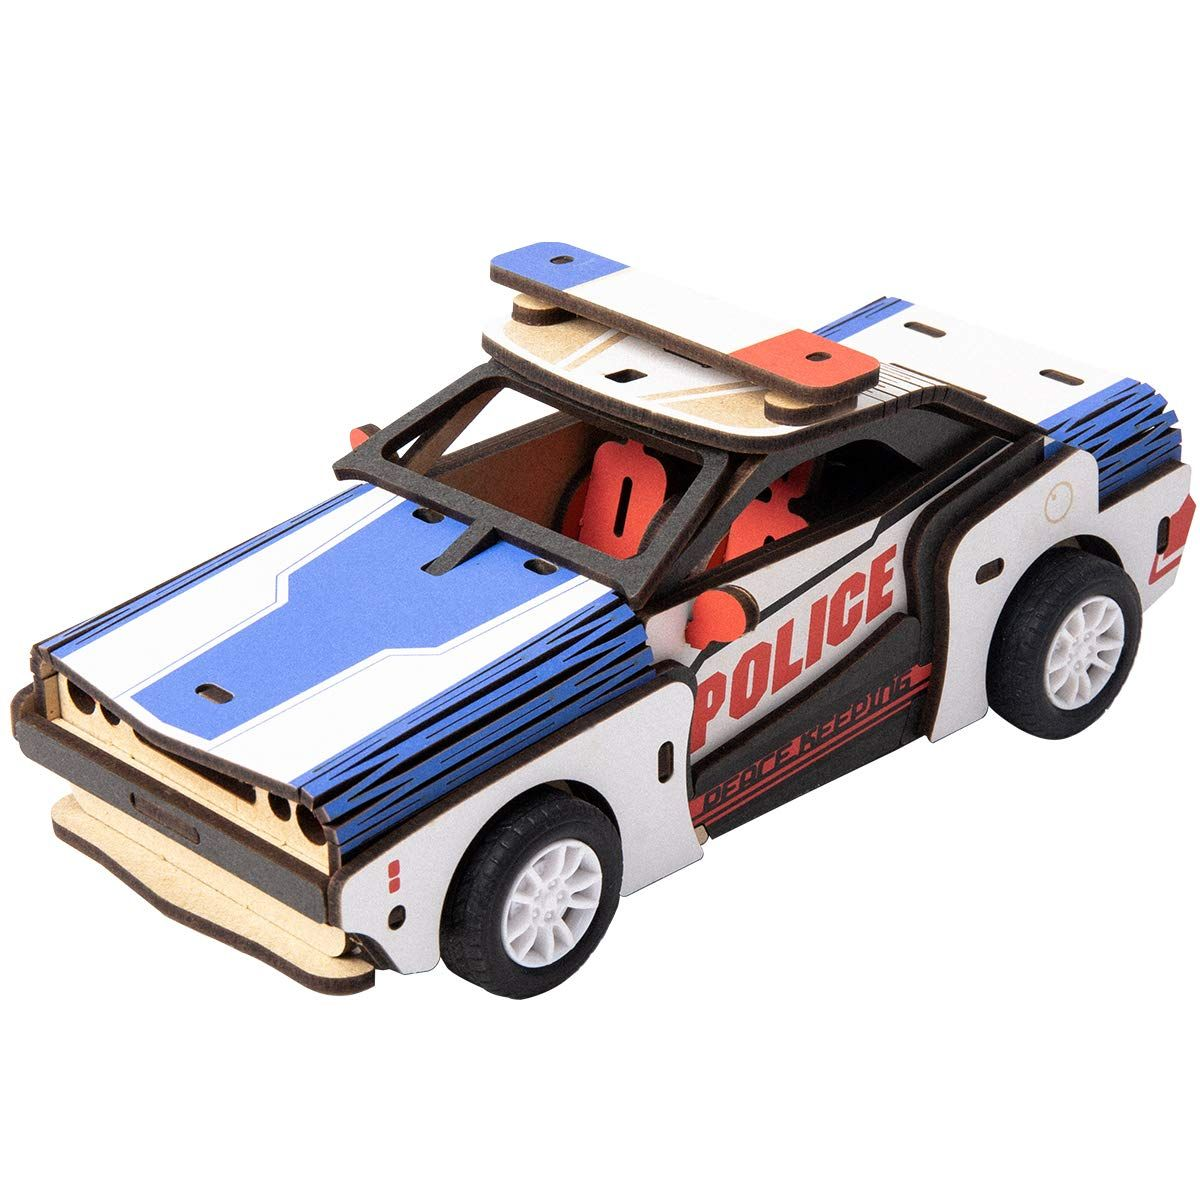 RoWood Wooden Toys Police Car Building Kits for Kids Inertia Power Vehicles Gift for Boys /& Girls Aged 5 Years Old and Up